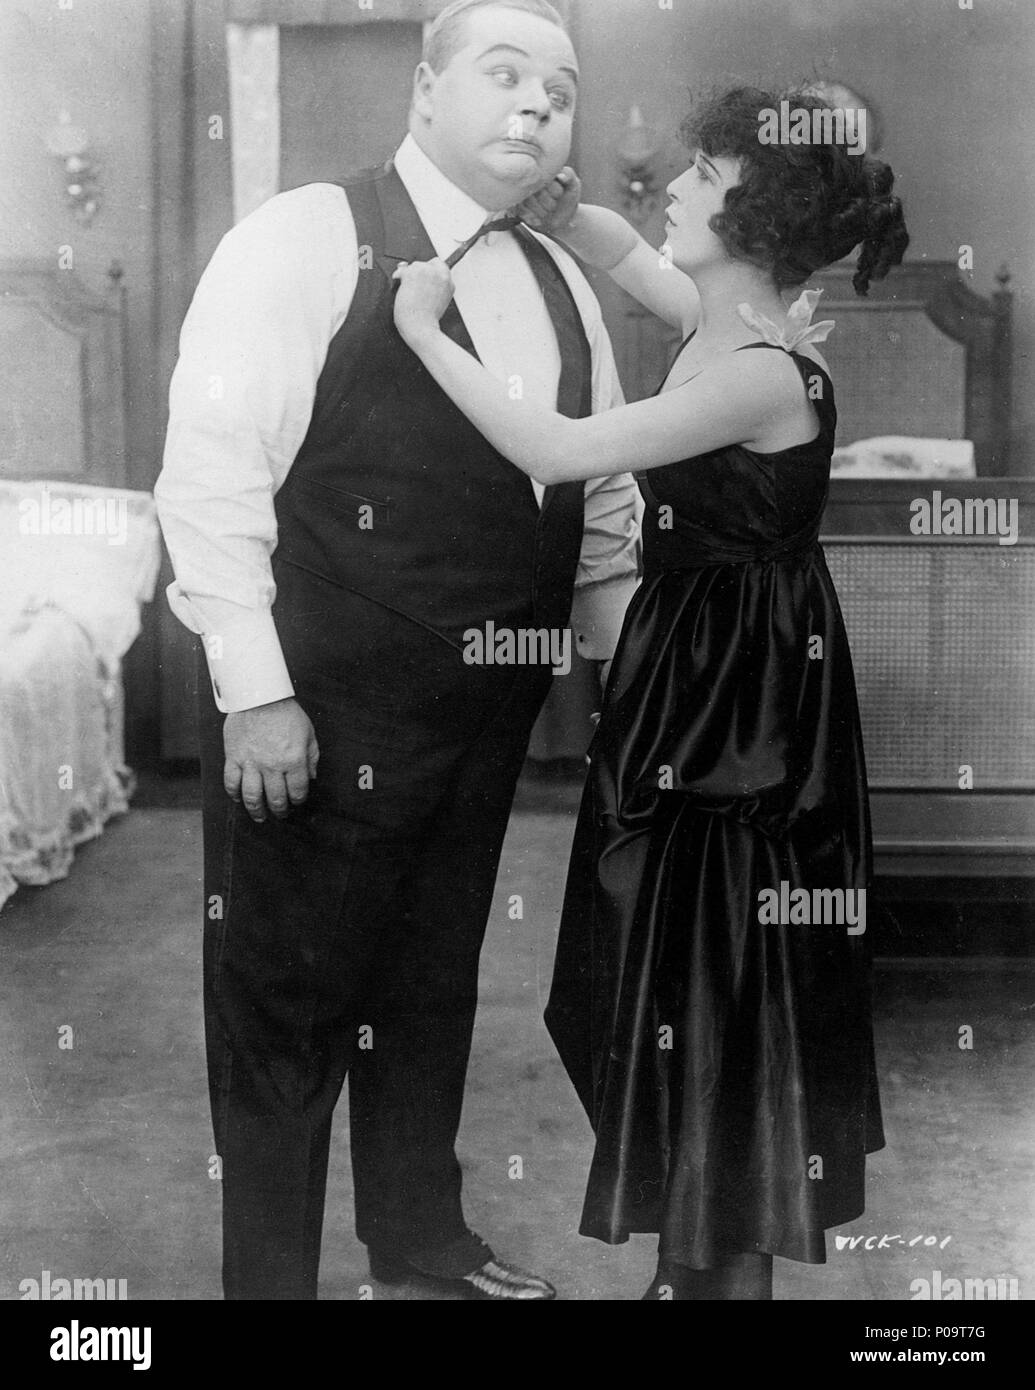 Original Film Title: WHEN COMEDY WAS KING.  English Title: WHEN COMEDY WAS KING.  Film Director: ROBERT YOUNGSON.  Year: 1960.  Stars: ROSCOE 'FATTY' ARBUCKLE. Credit: 20TH CENTURY FOX/ROBERT YOUNGSON PRODUCTIONS / Album - Stock Image